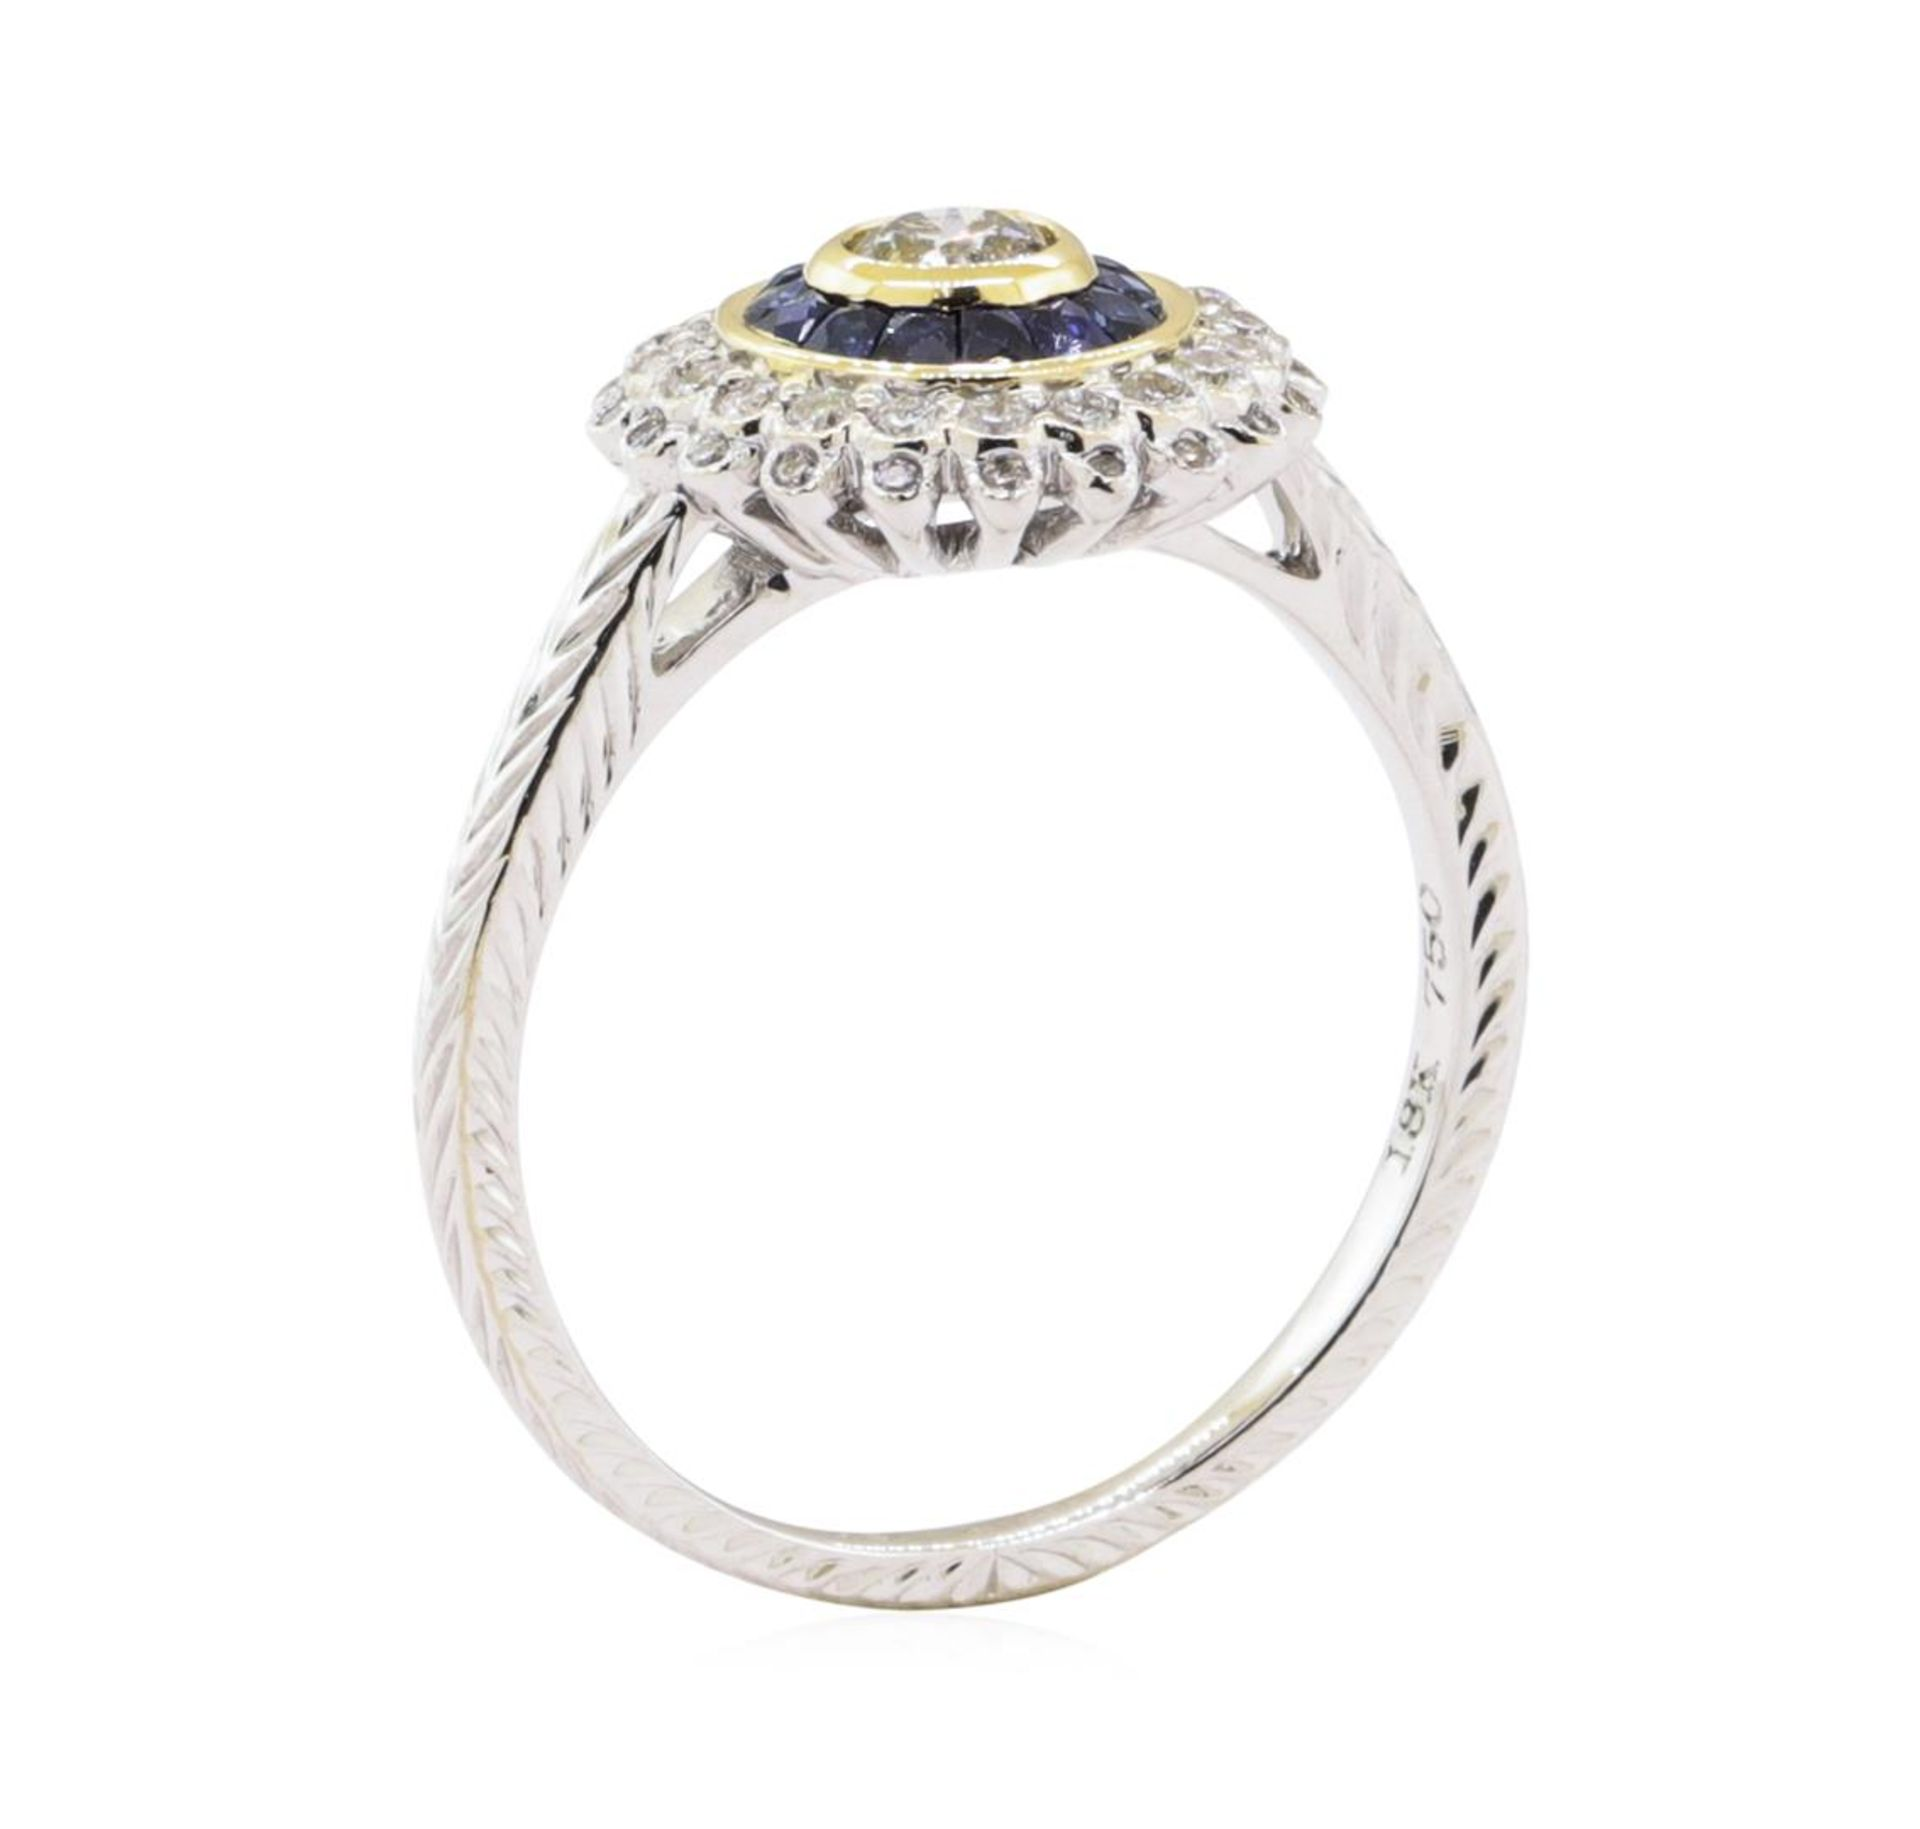 0.44ctw Diamond Ring - 18KT Two-Tone Gold - Image 4 of 4